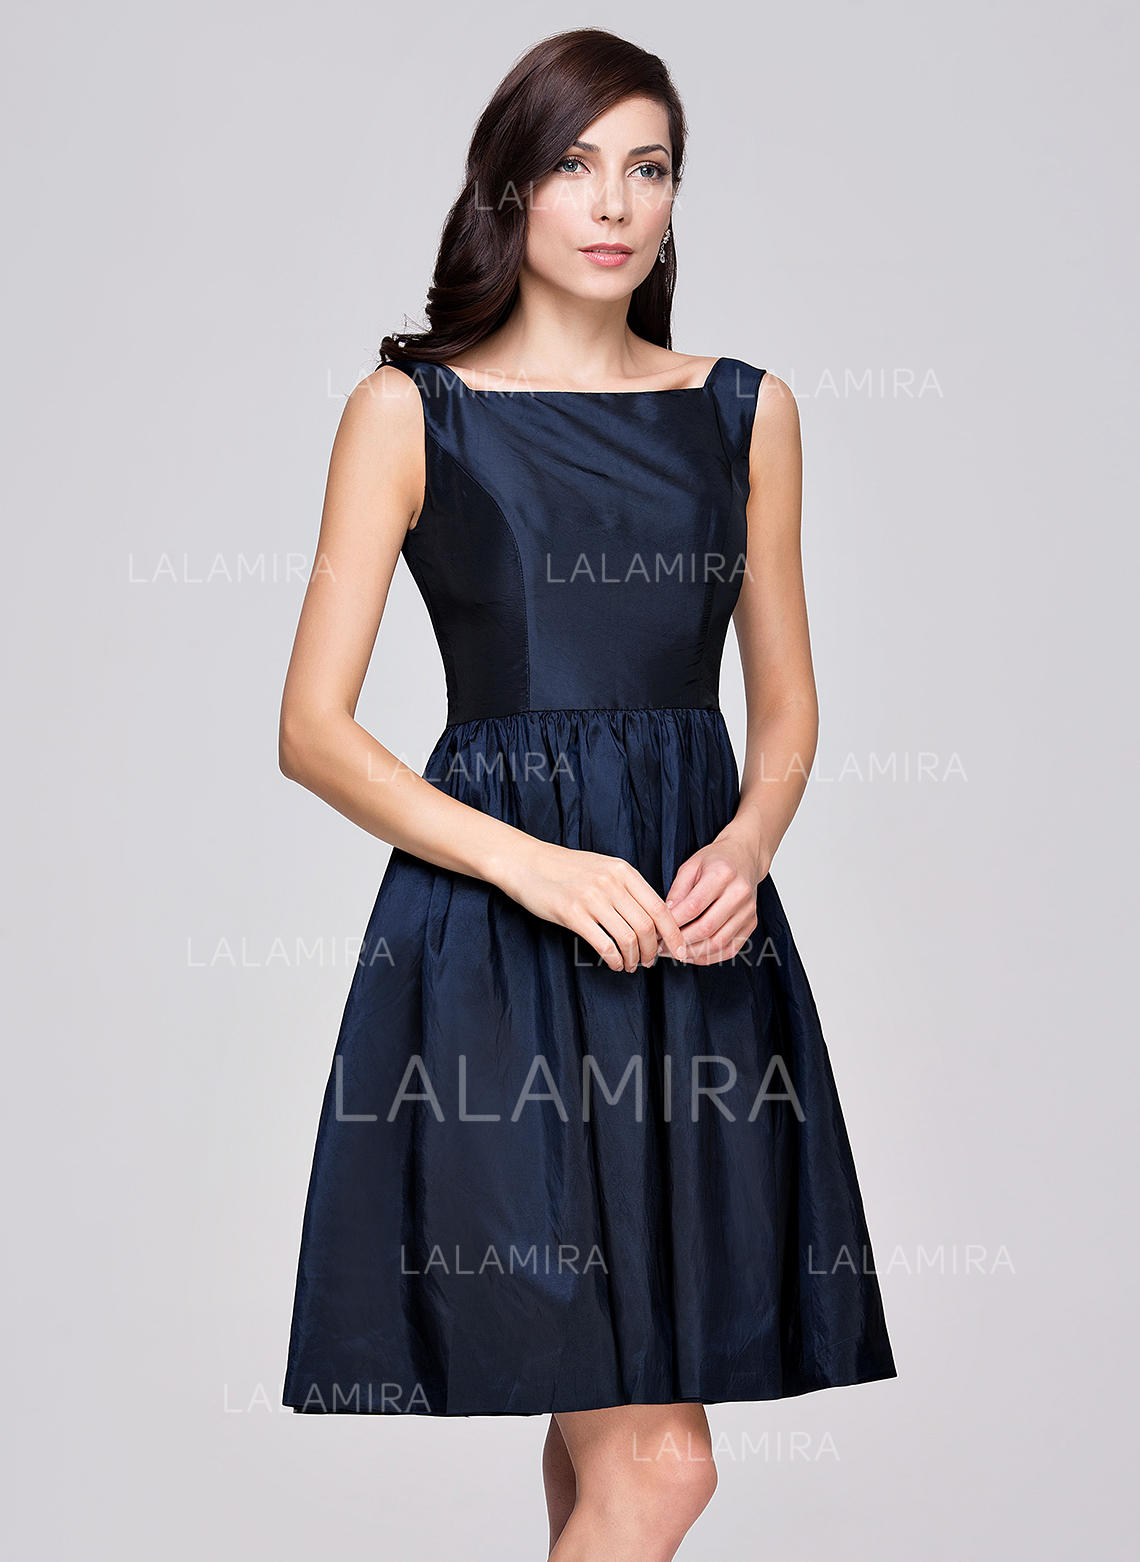 d7444b208ba A-Line Princess Taffeta Bridesmaid Dresses Ruffle Square Neckline  Sleeveless Knee-Length (. Loading zoom